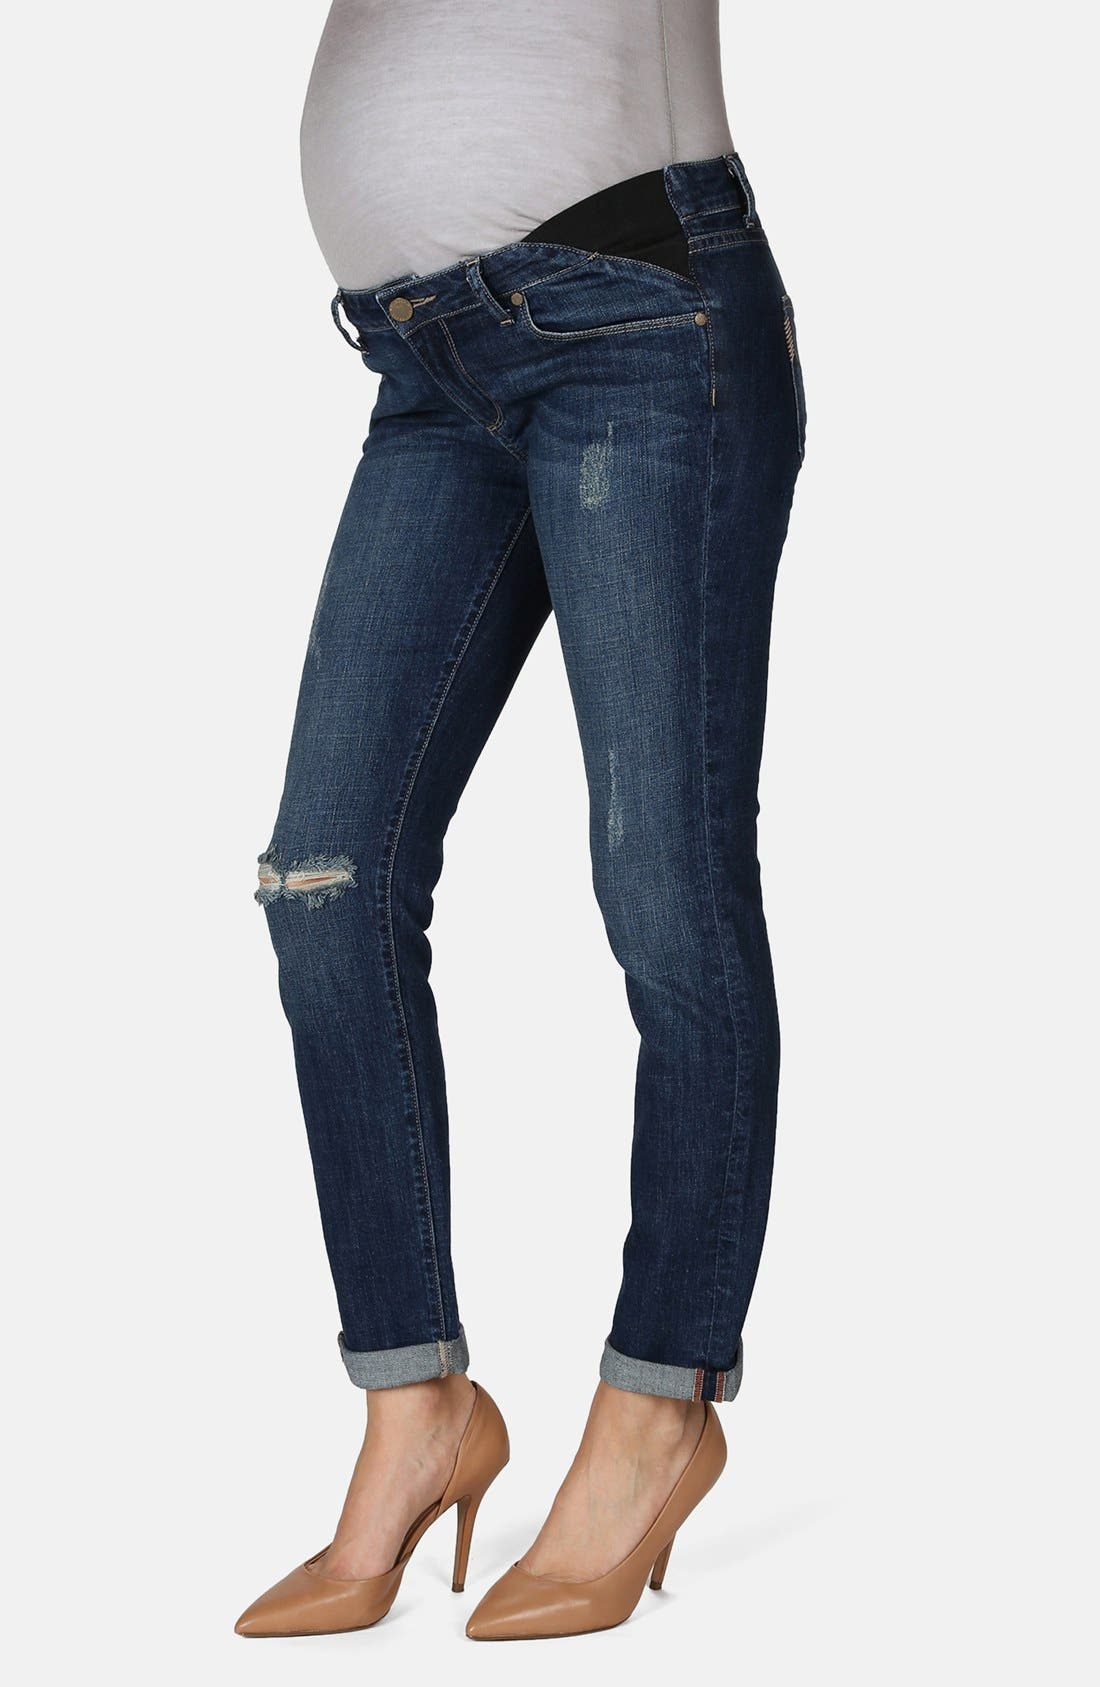 Alternate Image 1 Selected - Paige Denim 'Jimmy Jimmy' Skinny Boyfriend Maternity Jeans (Tawni Destruction)